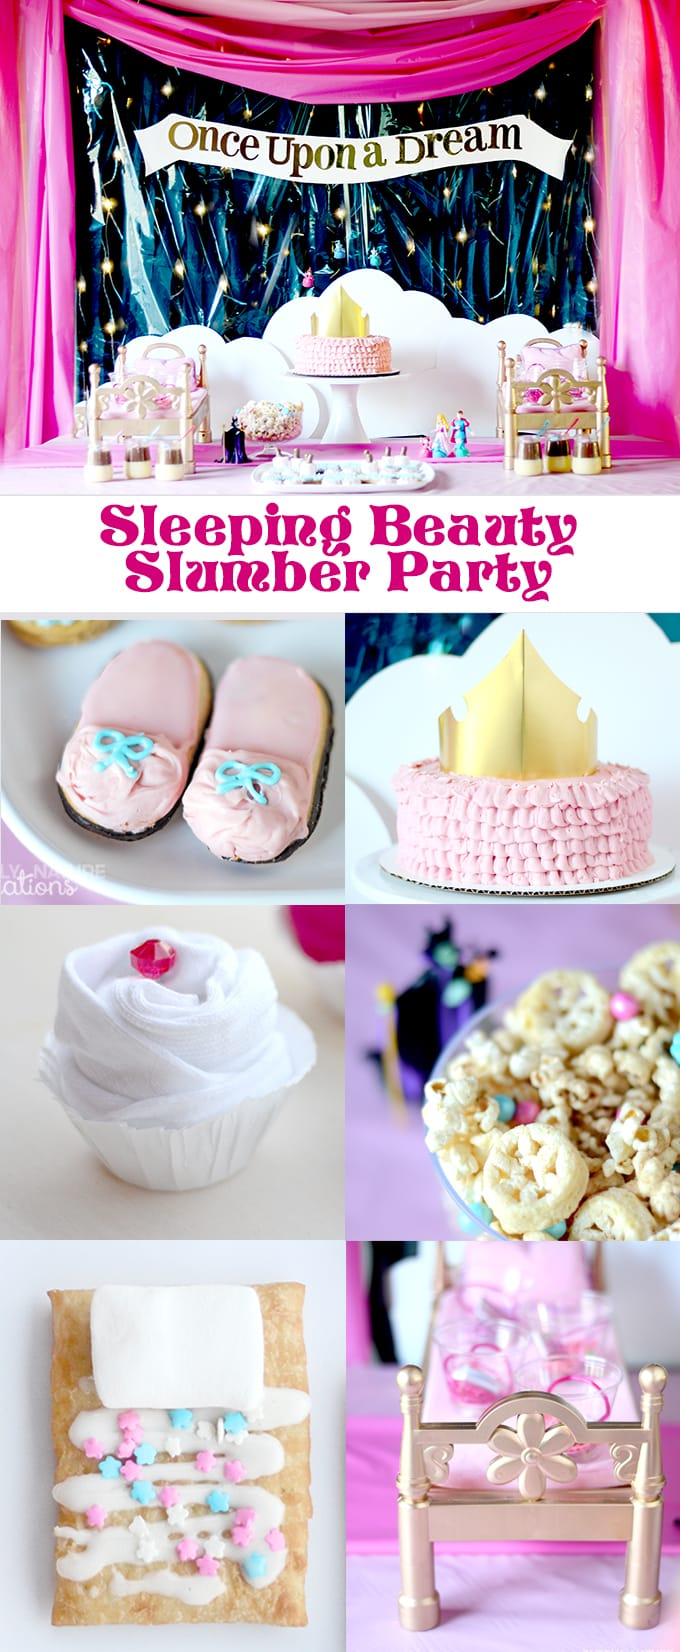 Christmas Slumber Party Ideas Part - 48: Sleeping Beauty Princess Slumber Party! Best Slumber Party Ideas With Such  Cute Themed Treats!